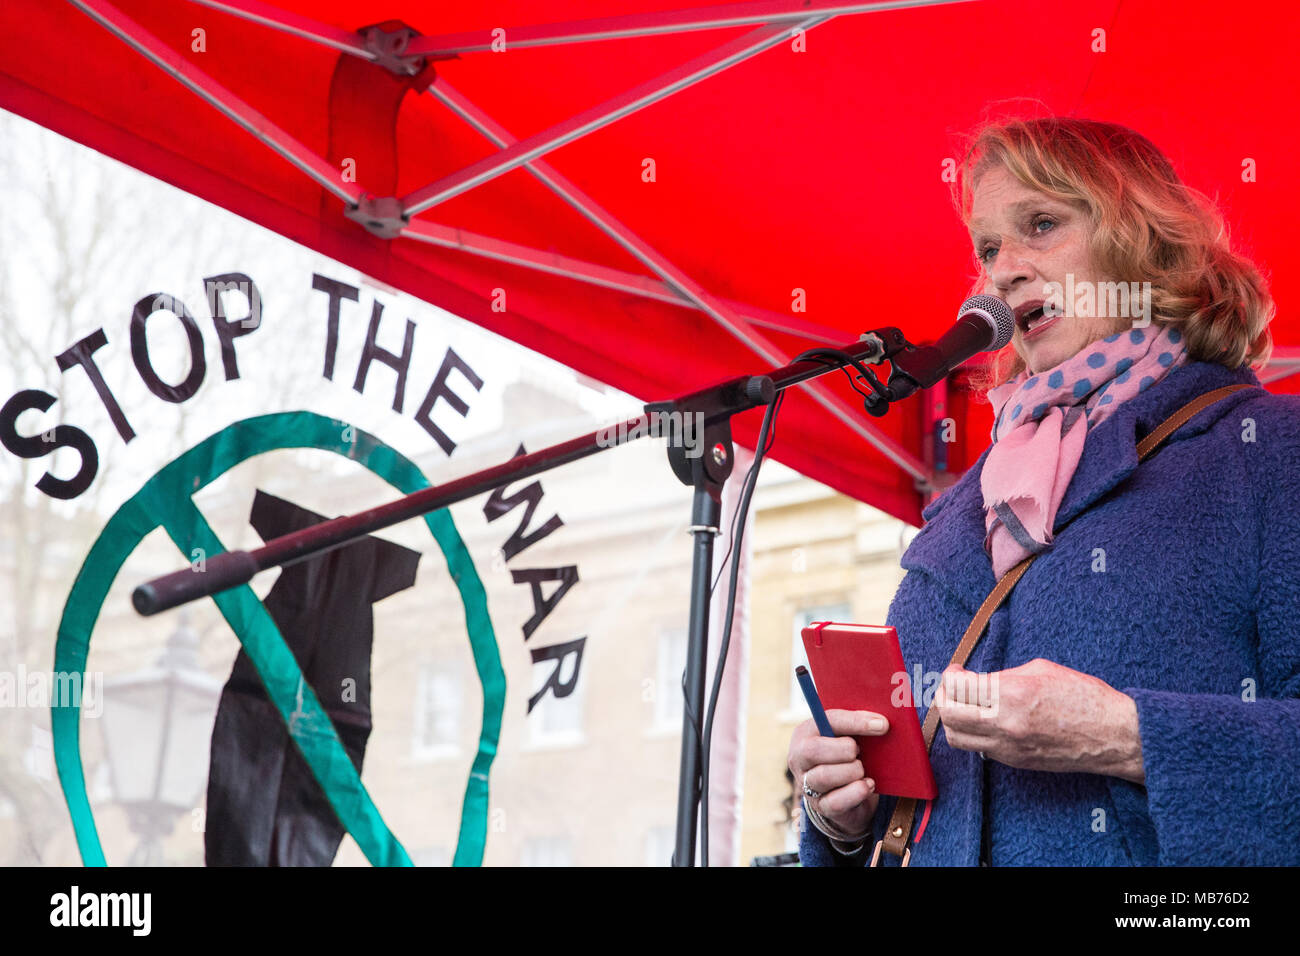 London, UK. 7th April, 2018. Jocelyn Hurndall, a human rights activist and mother of Tom Hurndall, who was shot in the head by an Israeli sniper in Gaza in 2003, addresses hundreds of people at a rally outside Downing Street in solidarity with Palestinians attending the Great March of Return in Gaza and in protest against the killing there by Israeli snipers using live ammunition of at least 27 unarmed Palestinians and the injury of hundreds more. Credit: Mark Kerrison/Alamy Live News Stock Photo